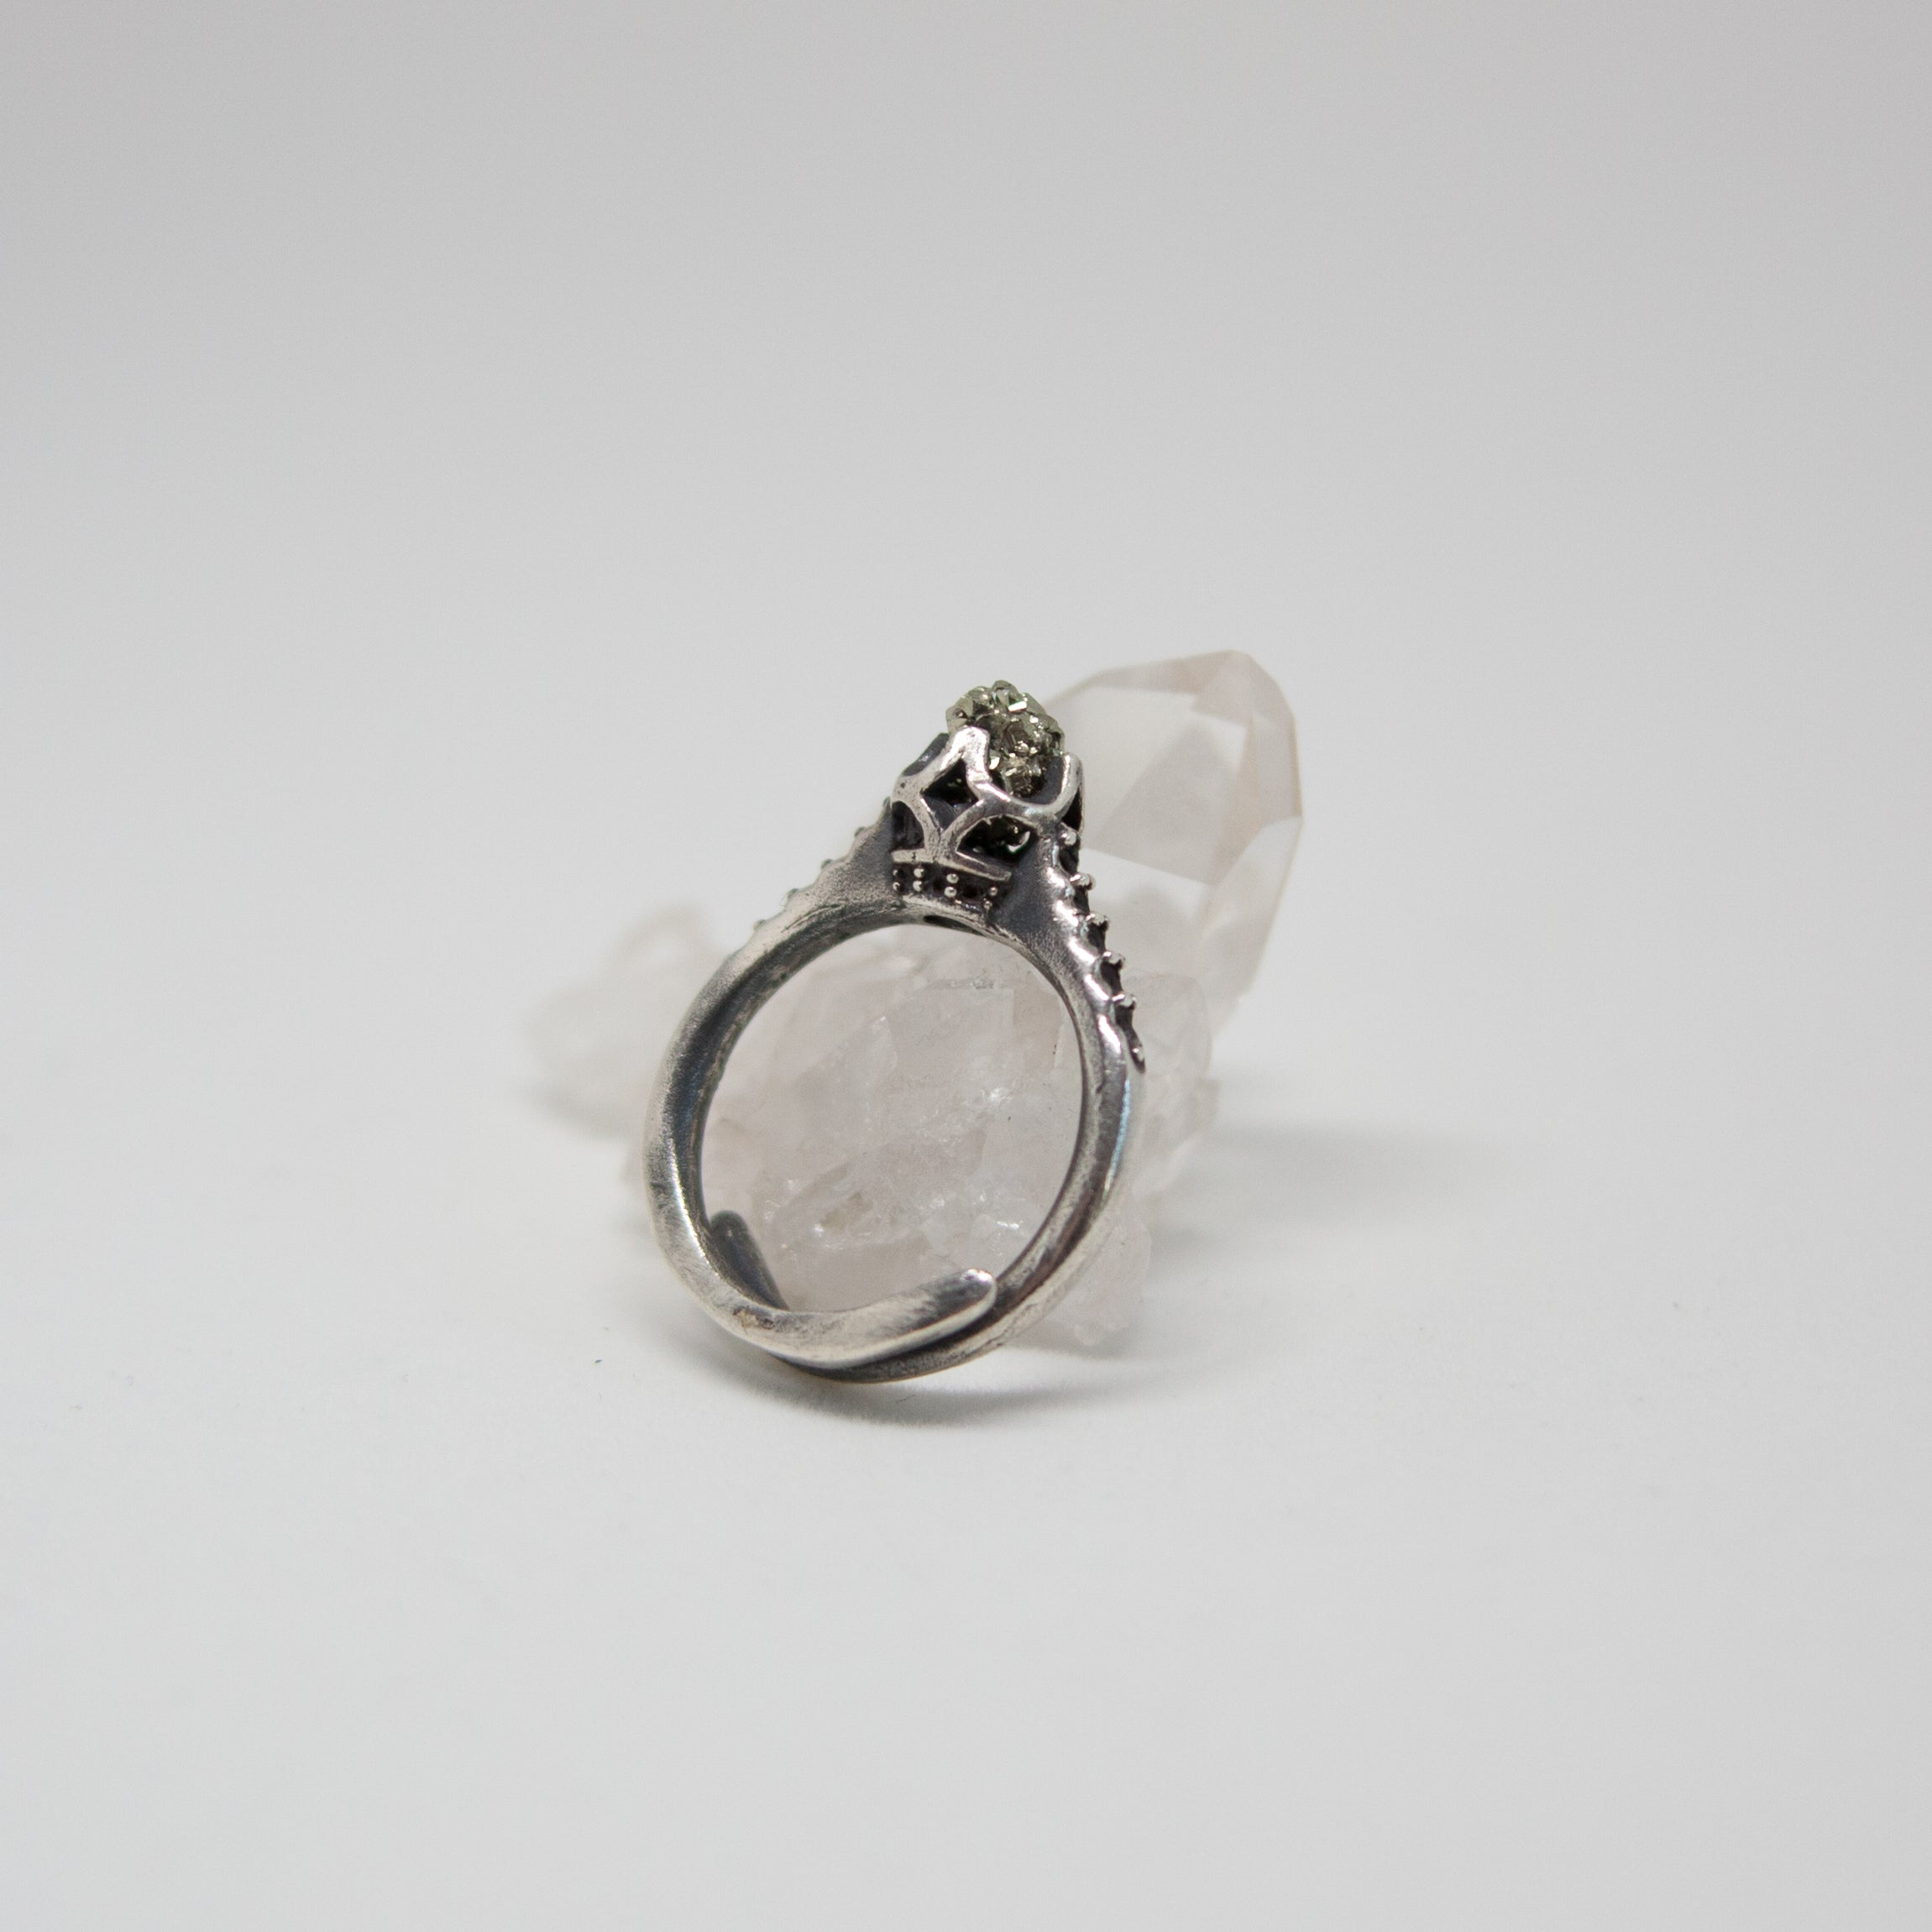 Castle Ring - Ready To Ship